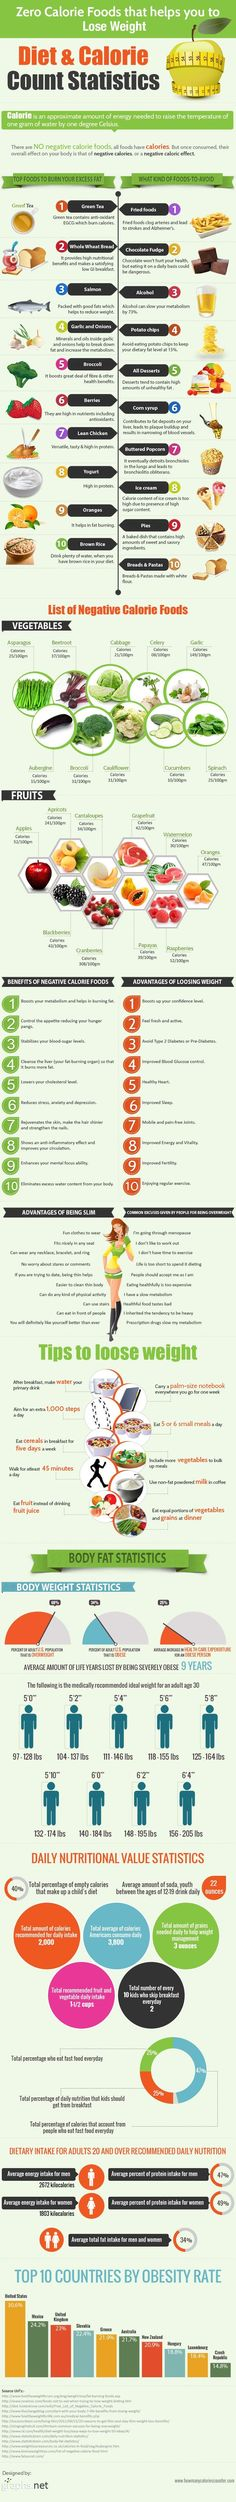 HEALTHY FOOD - Diet and Calorie - Lose Weight With These #ZeroCalorie Foods | #Infographic.